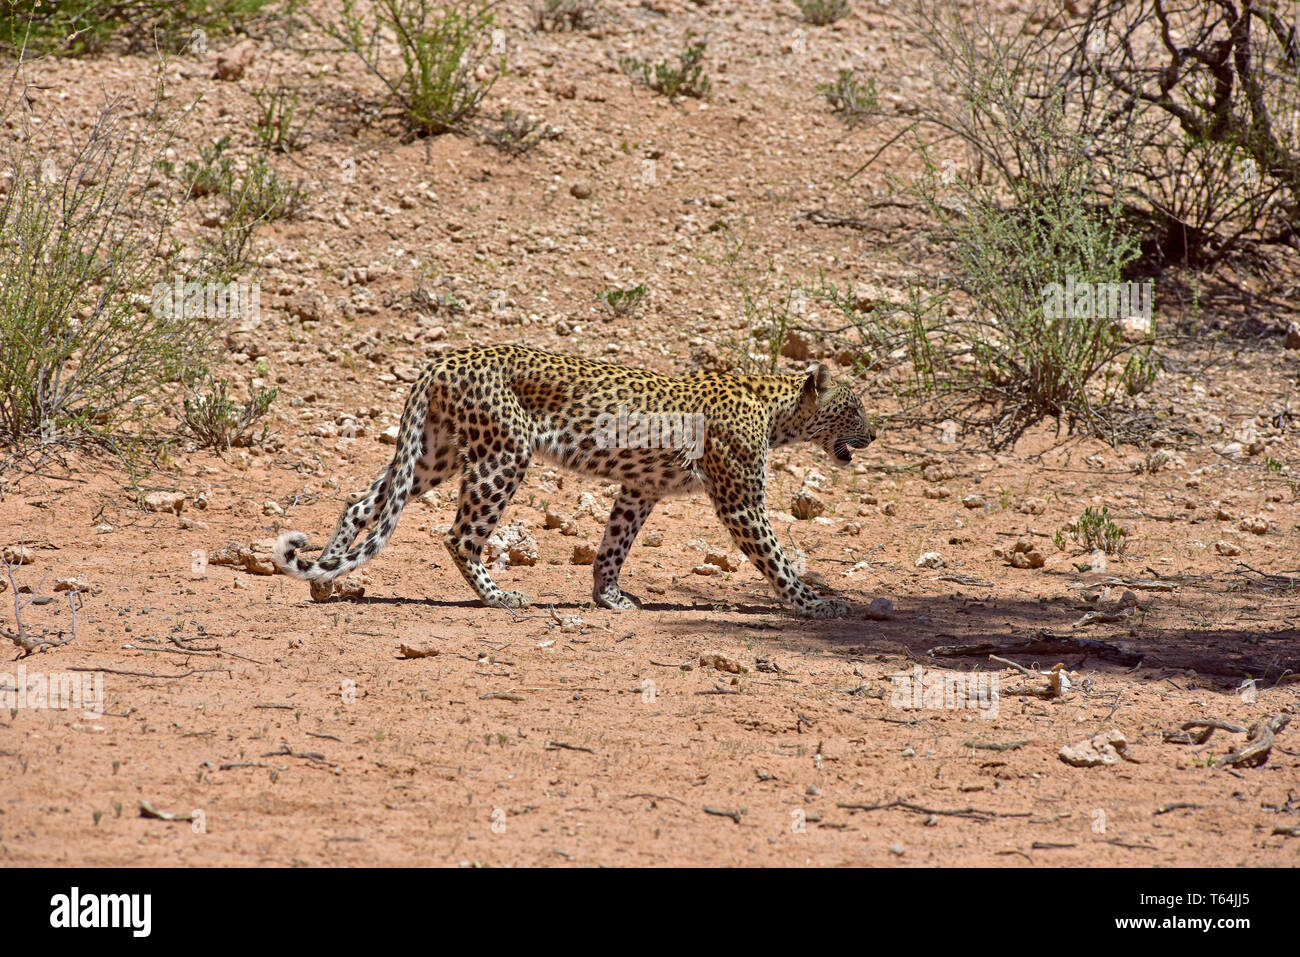 A leopard walks past the photographer over a thinly covered area in the Kgalagadi Transfrontier National Park, taken on 26.02.2019. The leopard (Panthera pardus) belongs to the family of cats; After the Tiger, Loewen and Jaguar, he is the fourth largest cat of prey. The low-susceptible species lives in much of Asia and Africa south of the Sahara, varying in size and weight depending on the environment, male leopards can reach a shoulder height of 70-80 cm and a weight of up to 90 kg. Photo: Matthias Toedt/dpa-Zentralbild/ZB/Picture Alliance   usage worldwide - Stock Image